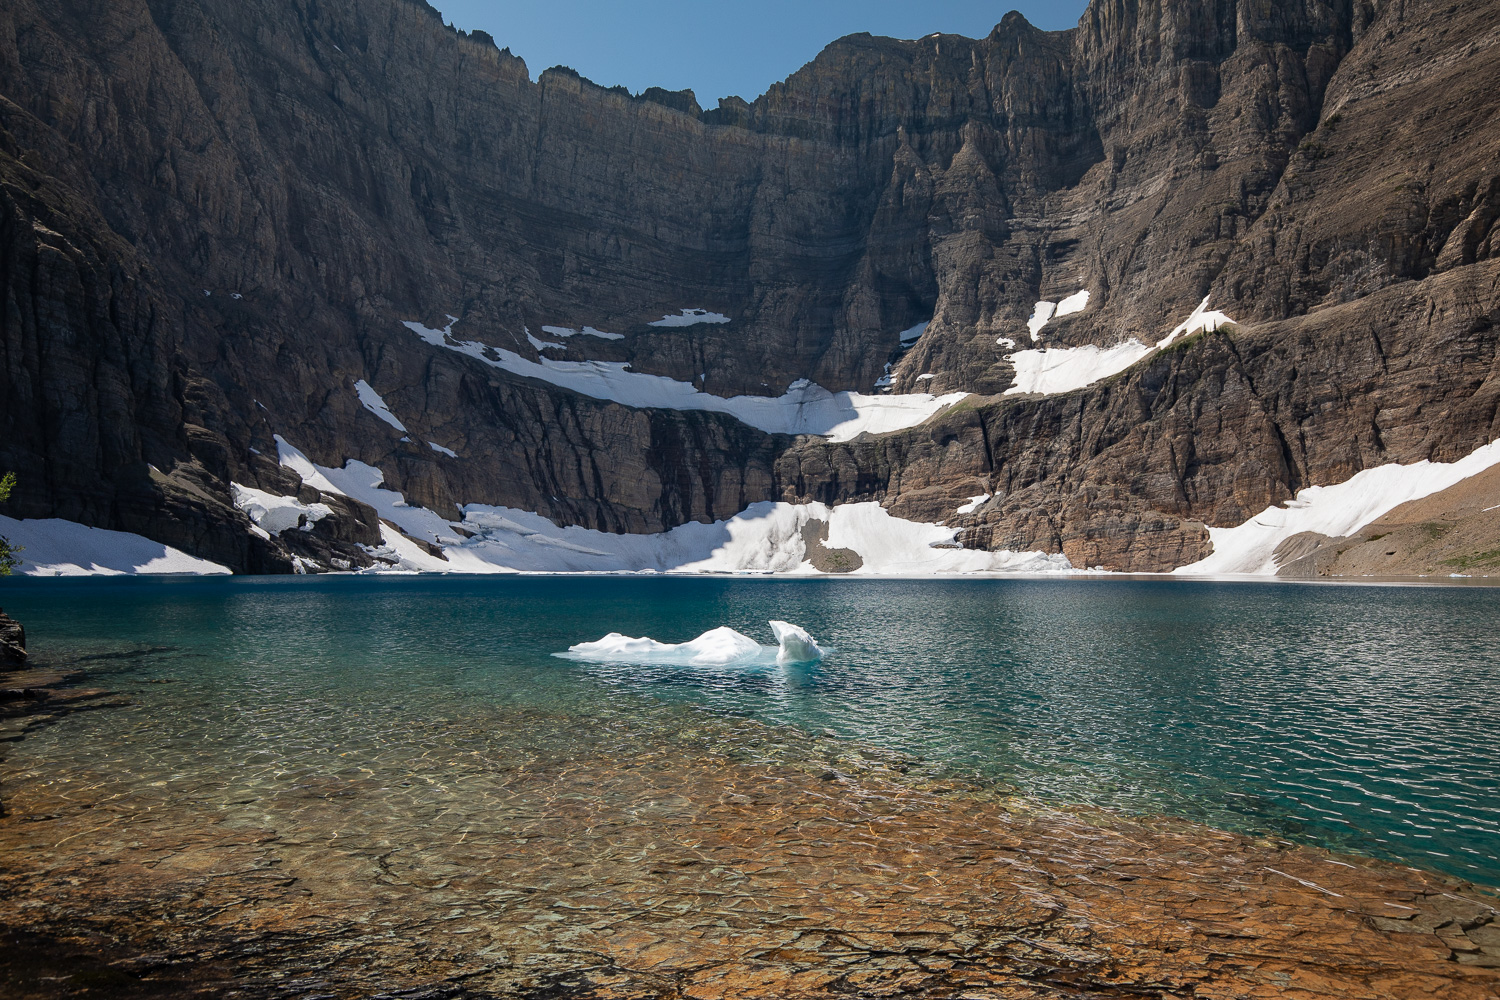 An iceberg floating in Iceberg Lake.